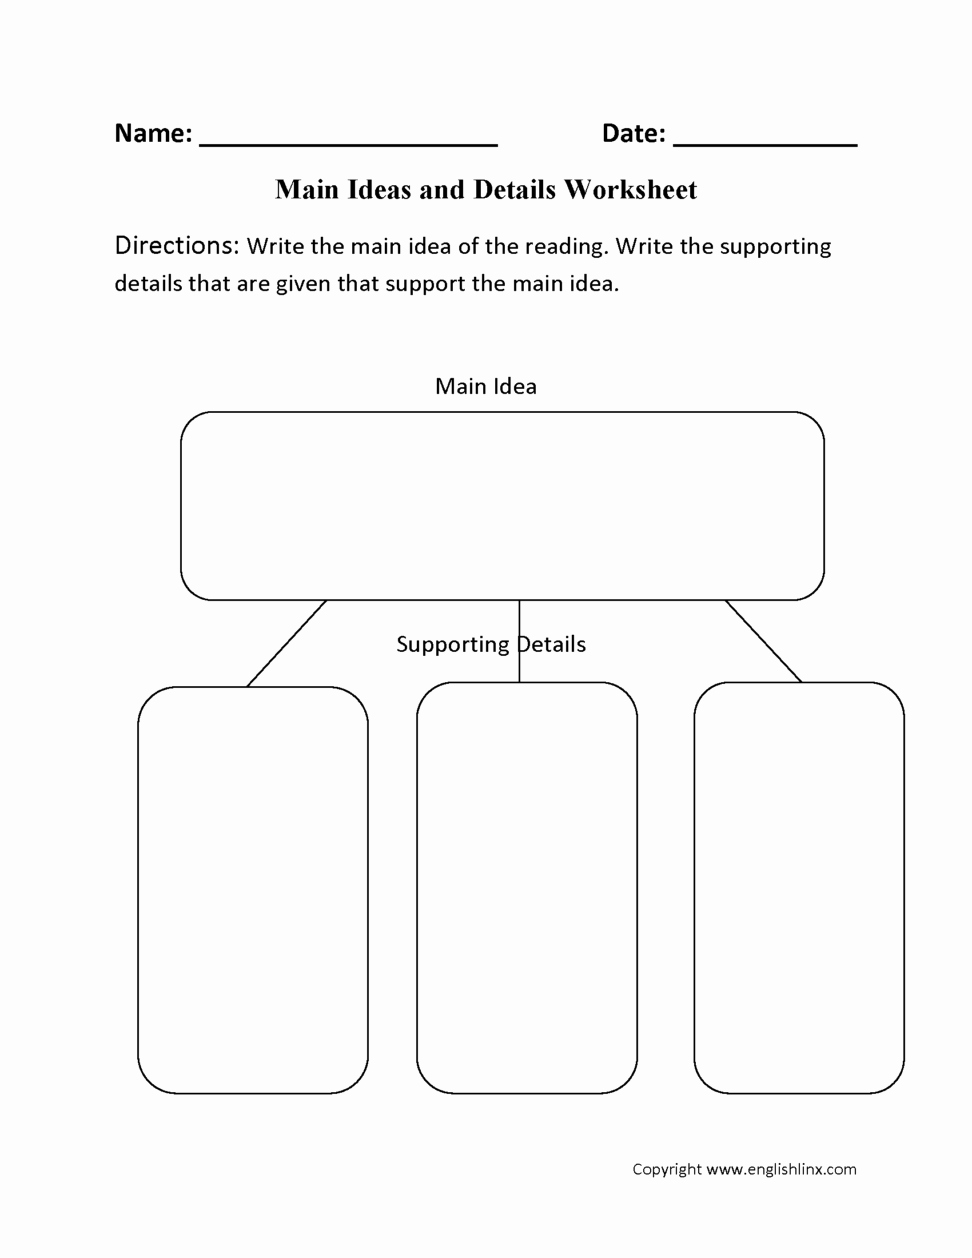 Main Idea Worksheet 4th Grade Best Of Main Idea Worksheets for Kindergarten Worksheet Mogenk